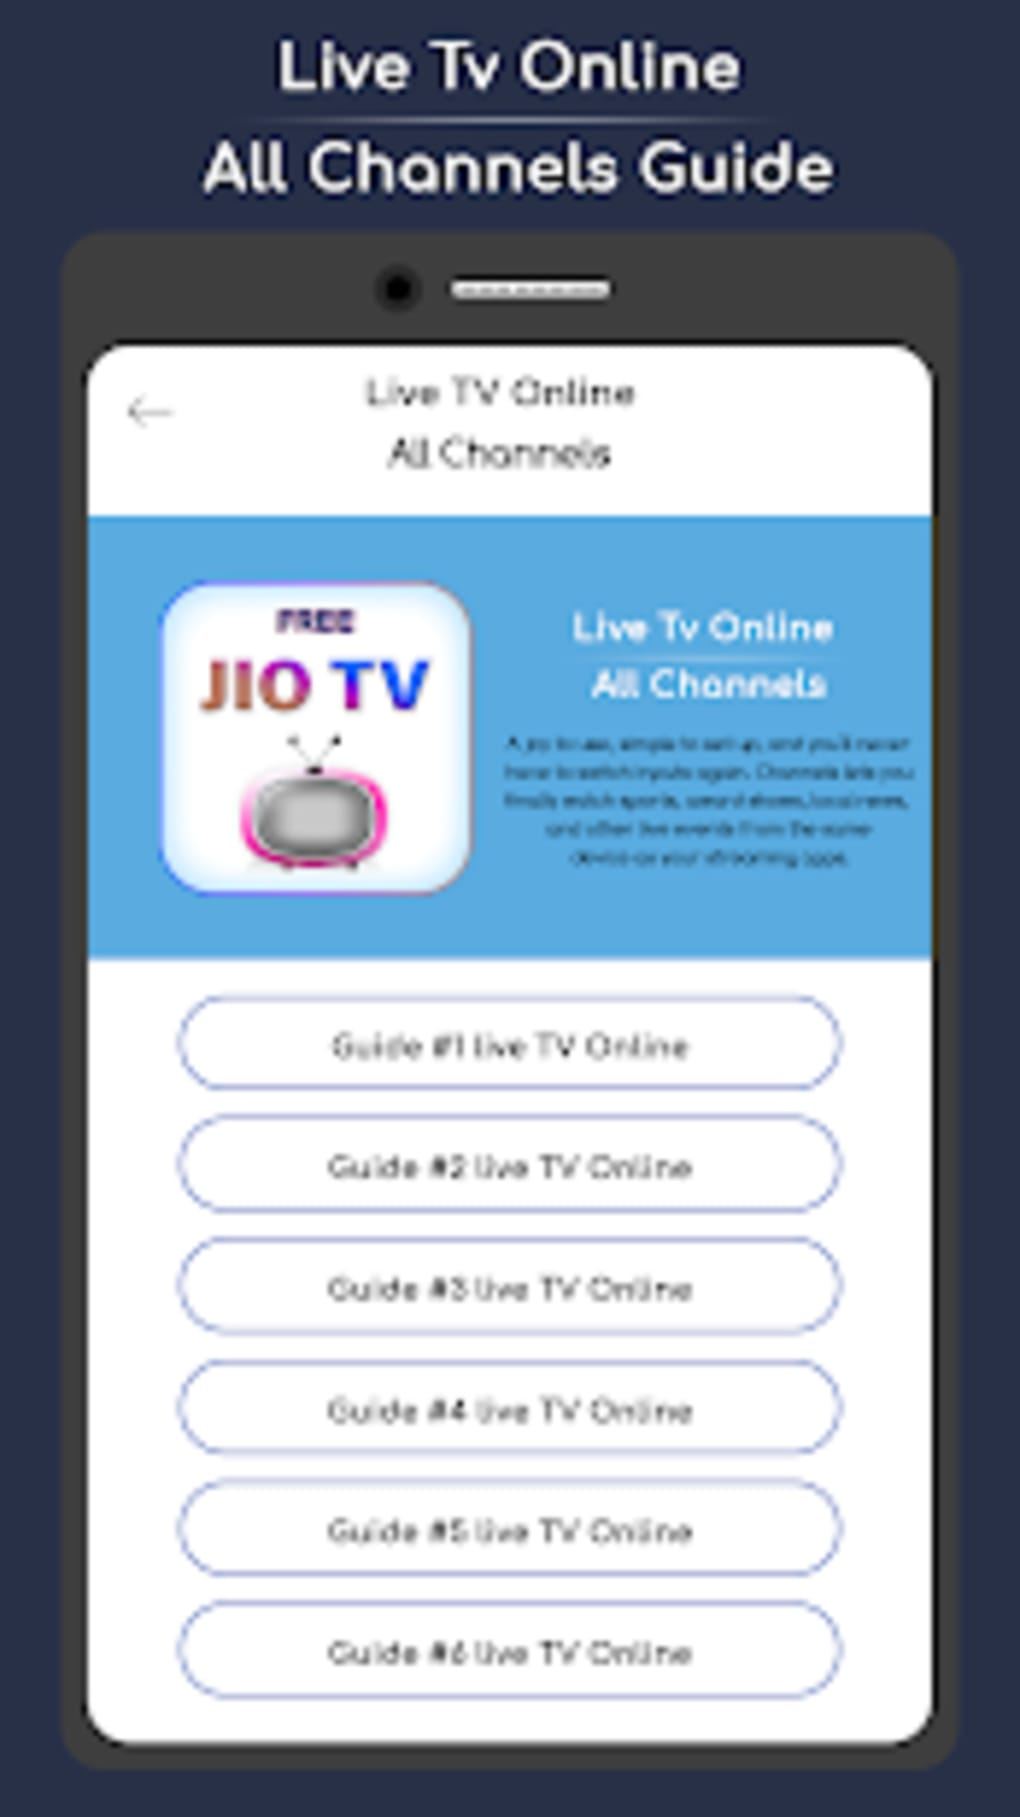 Free Jio TV HD Guide 2019 for Android - Download